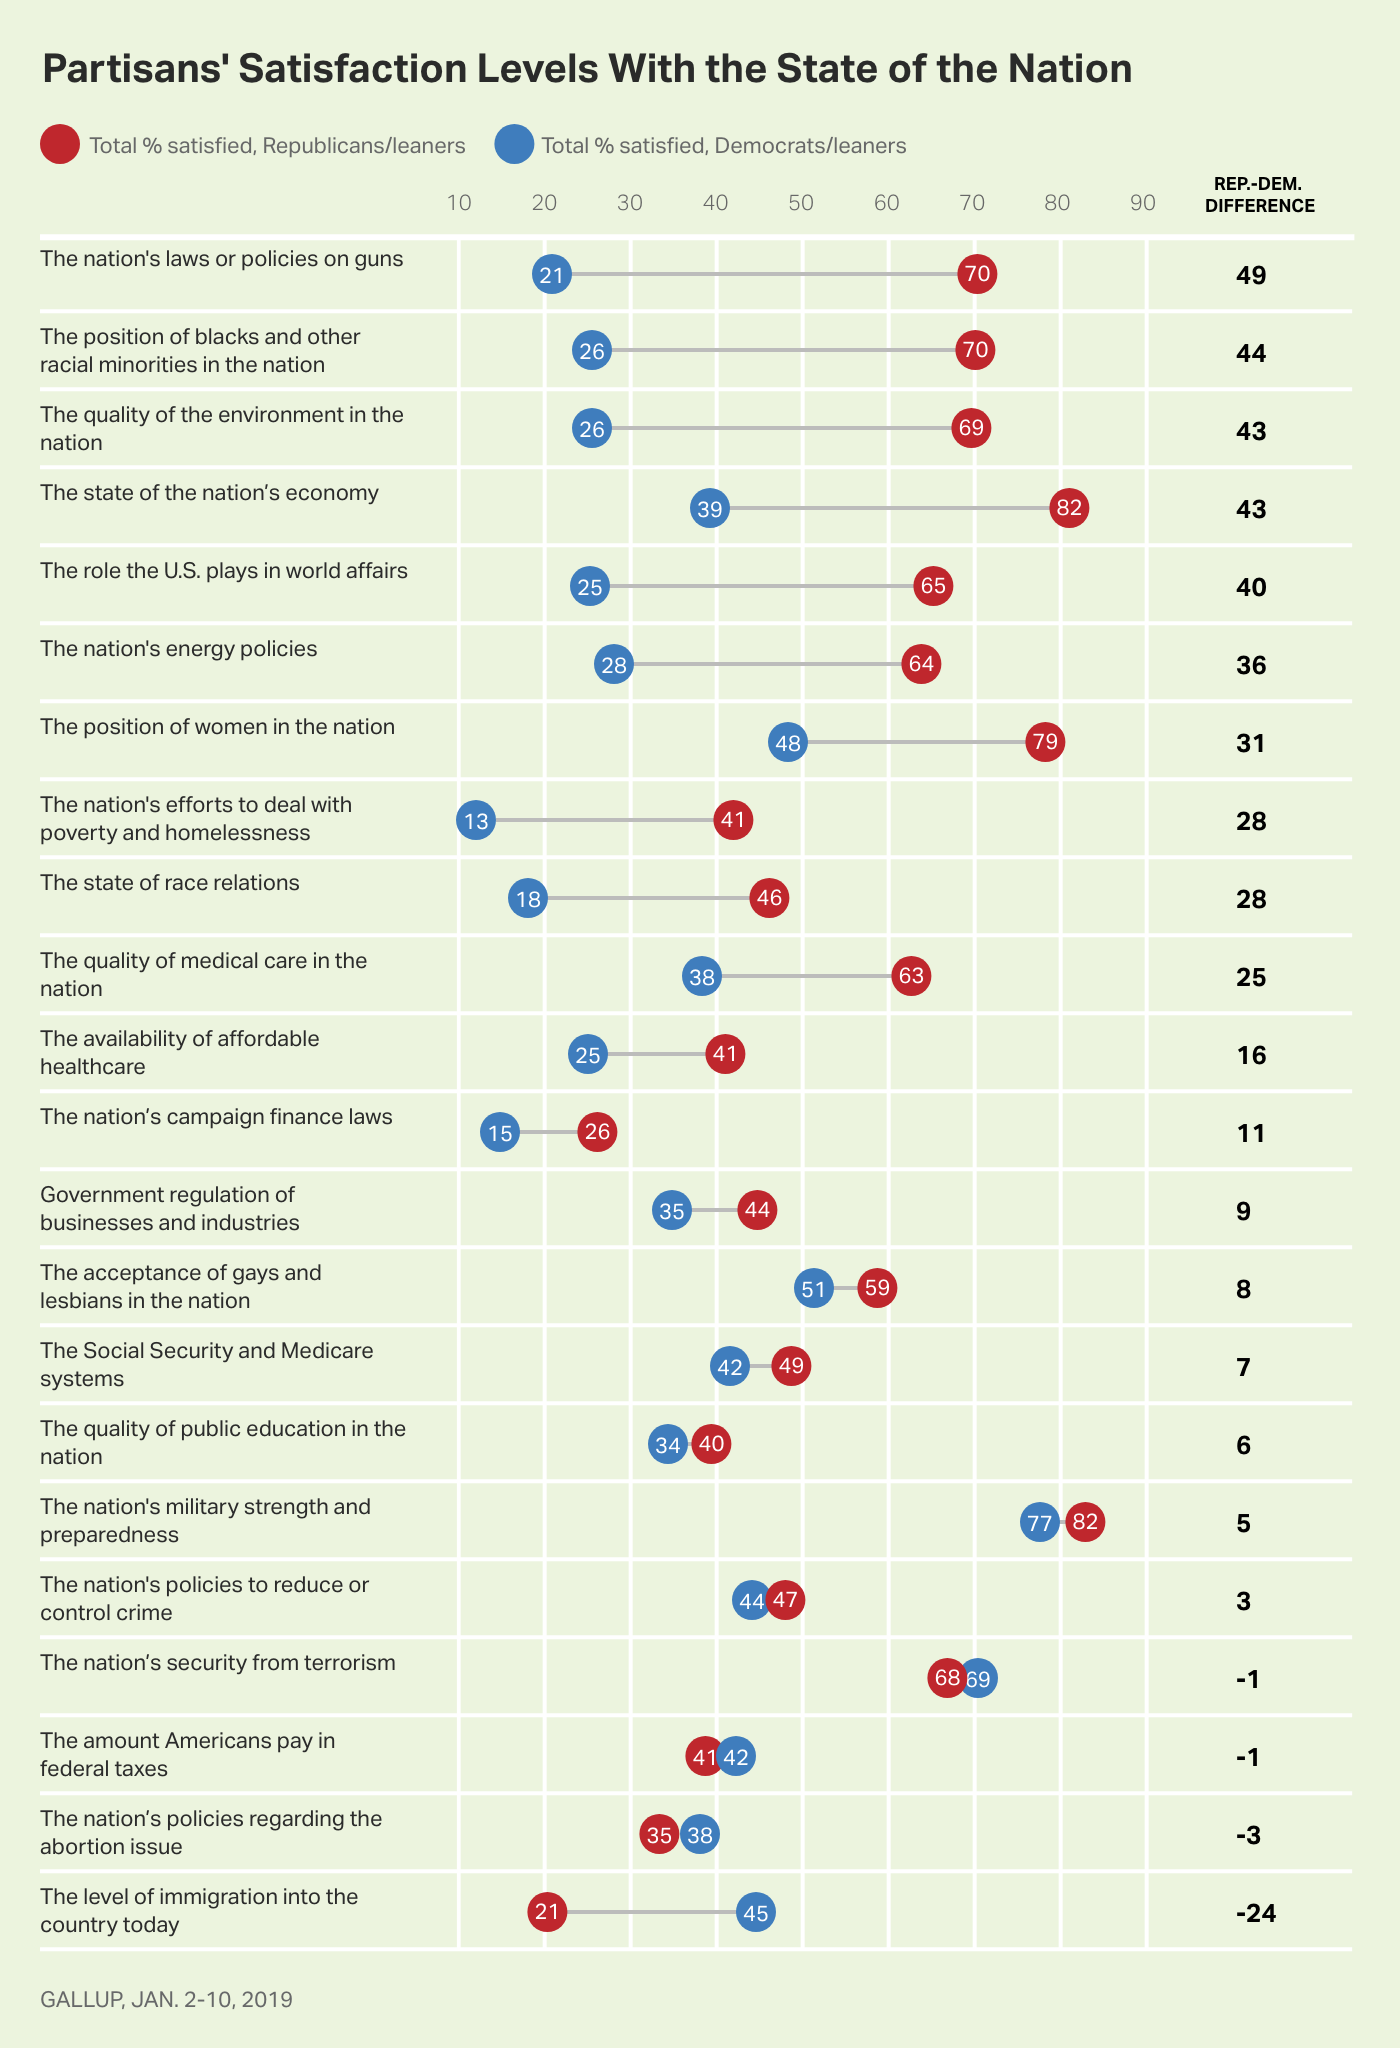 Graph. Ranking of differences in satisfaction levels of Republicans and Democrats on 22 issues. Gun policy is largest.